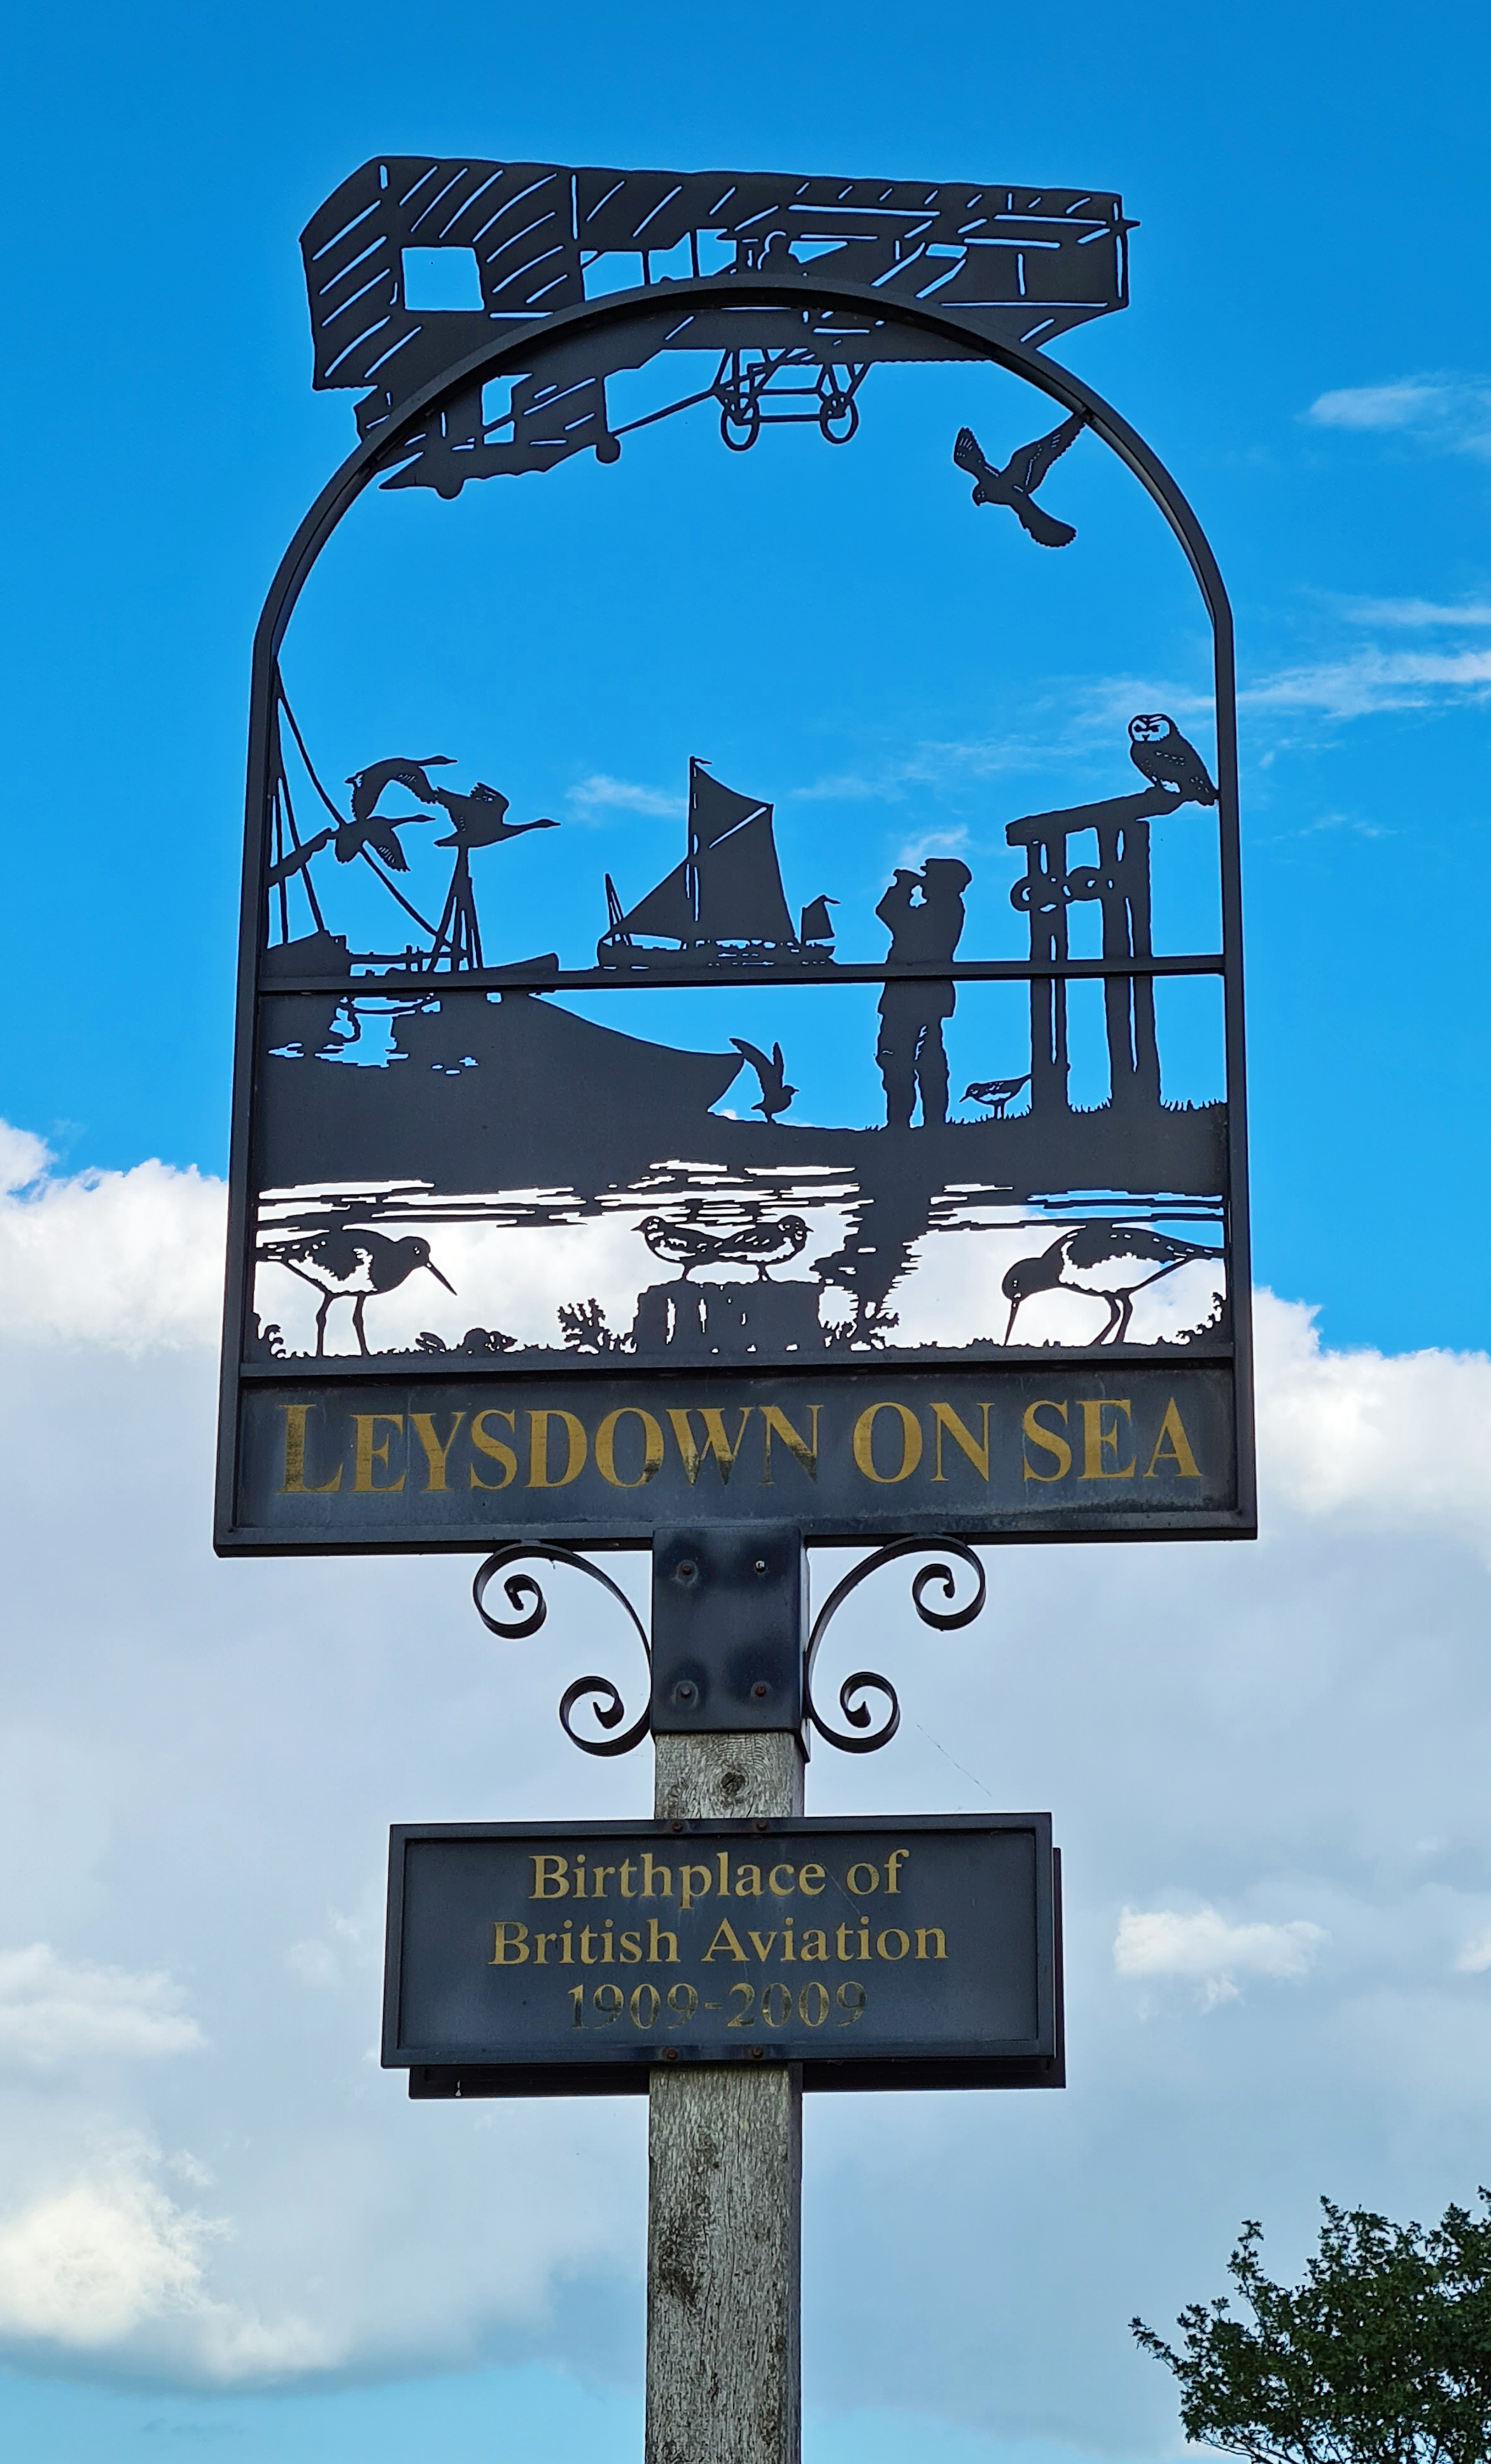 Village sign- Leysdown-on-Sea, the birthplace of British Aviation